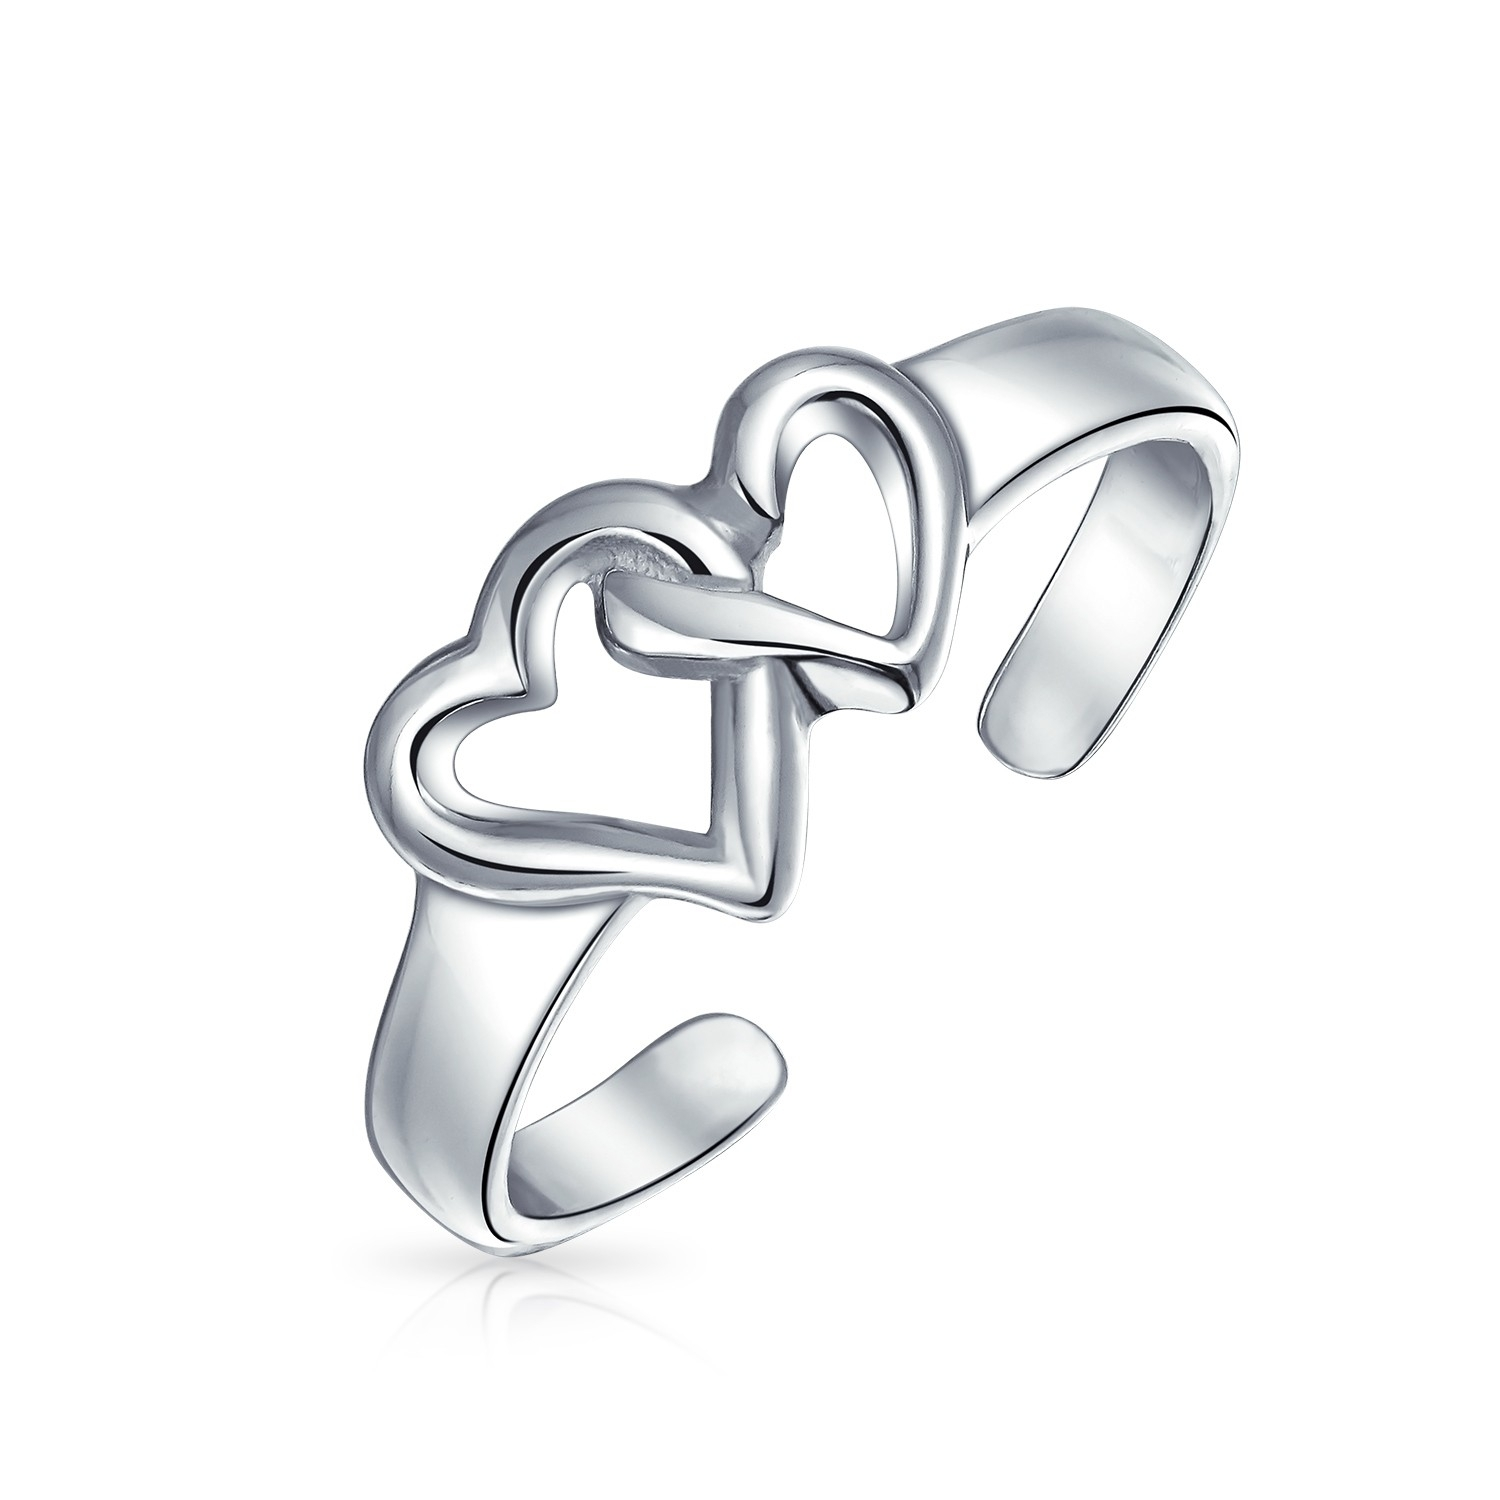 Adjustable Double Open Heart Midi Ring Sterling Silver Toe Rings With Regard To Most Current Sterling Silver Toe Rings (View 6 of 15)